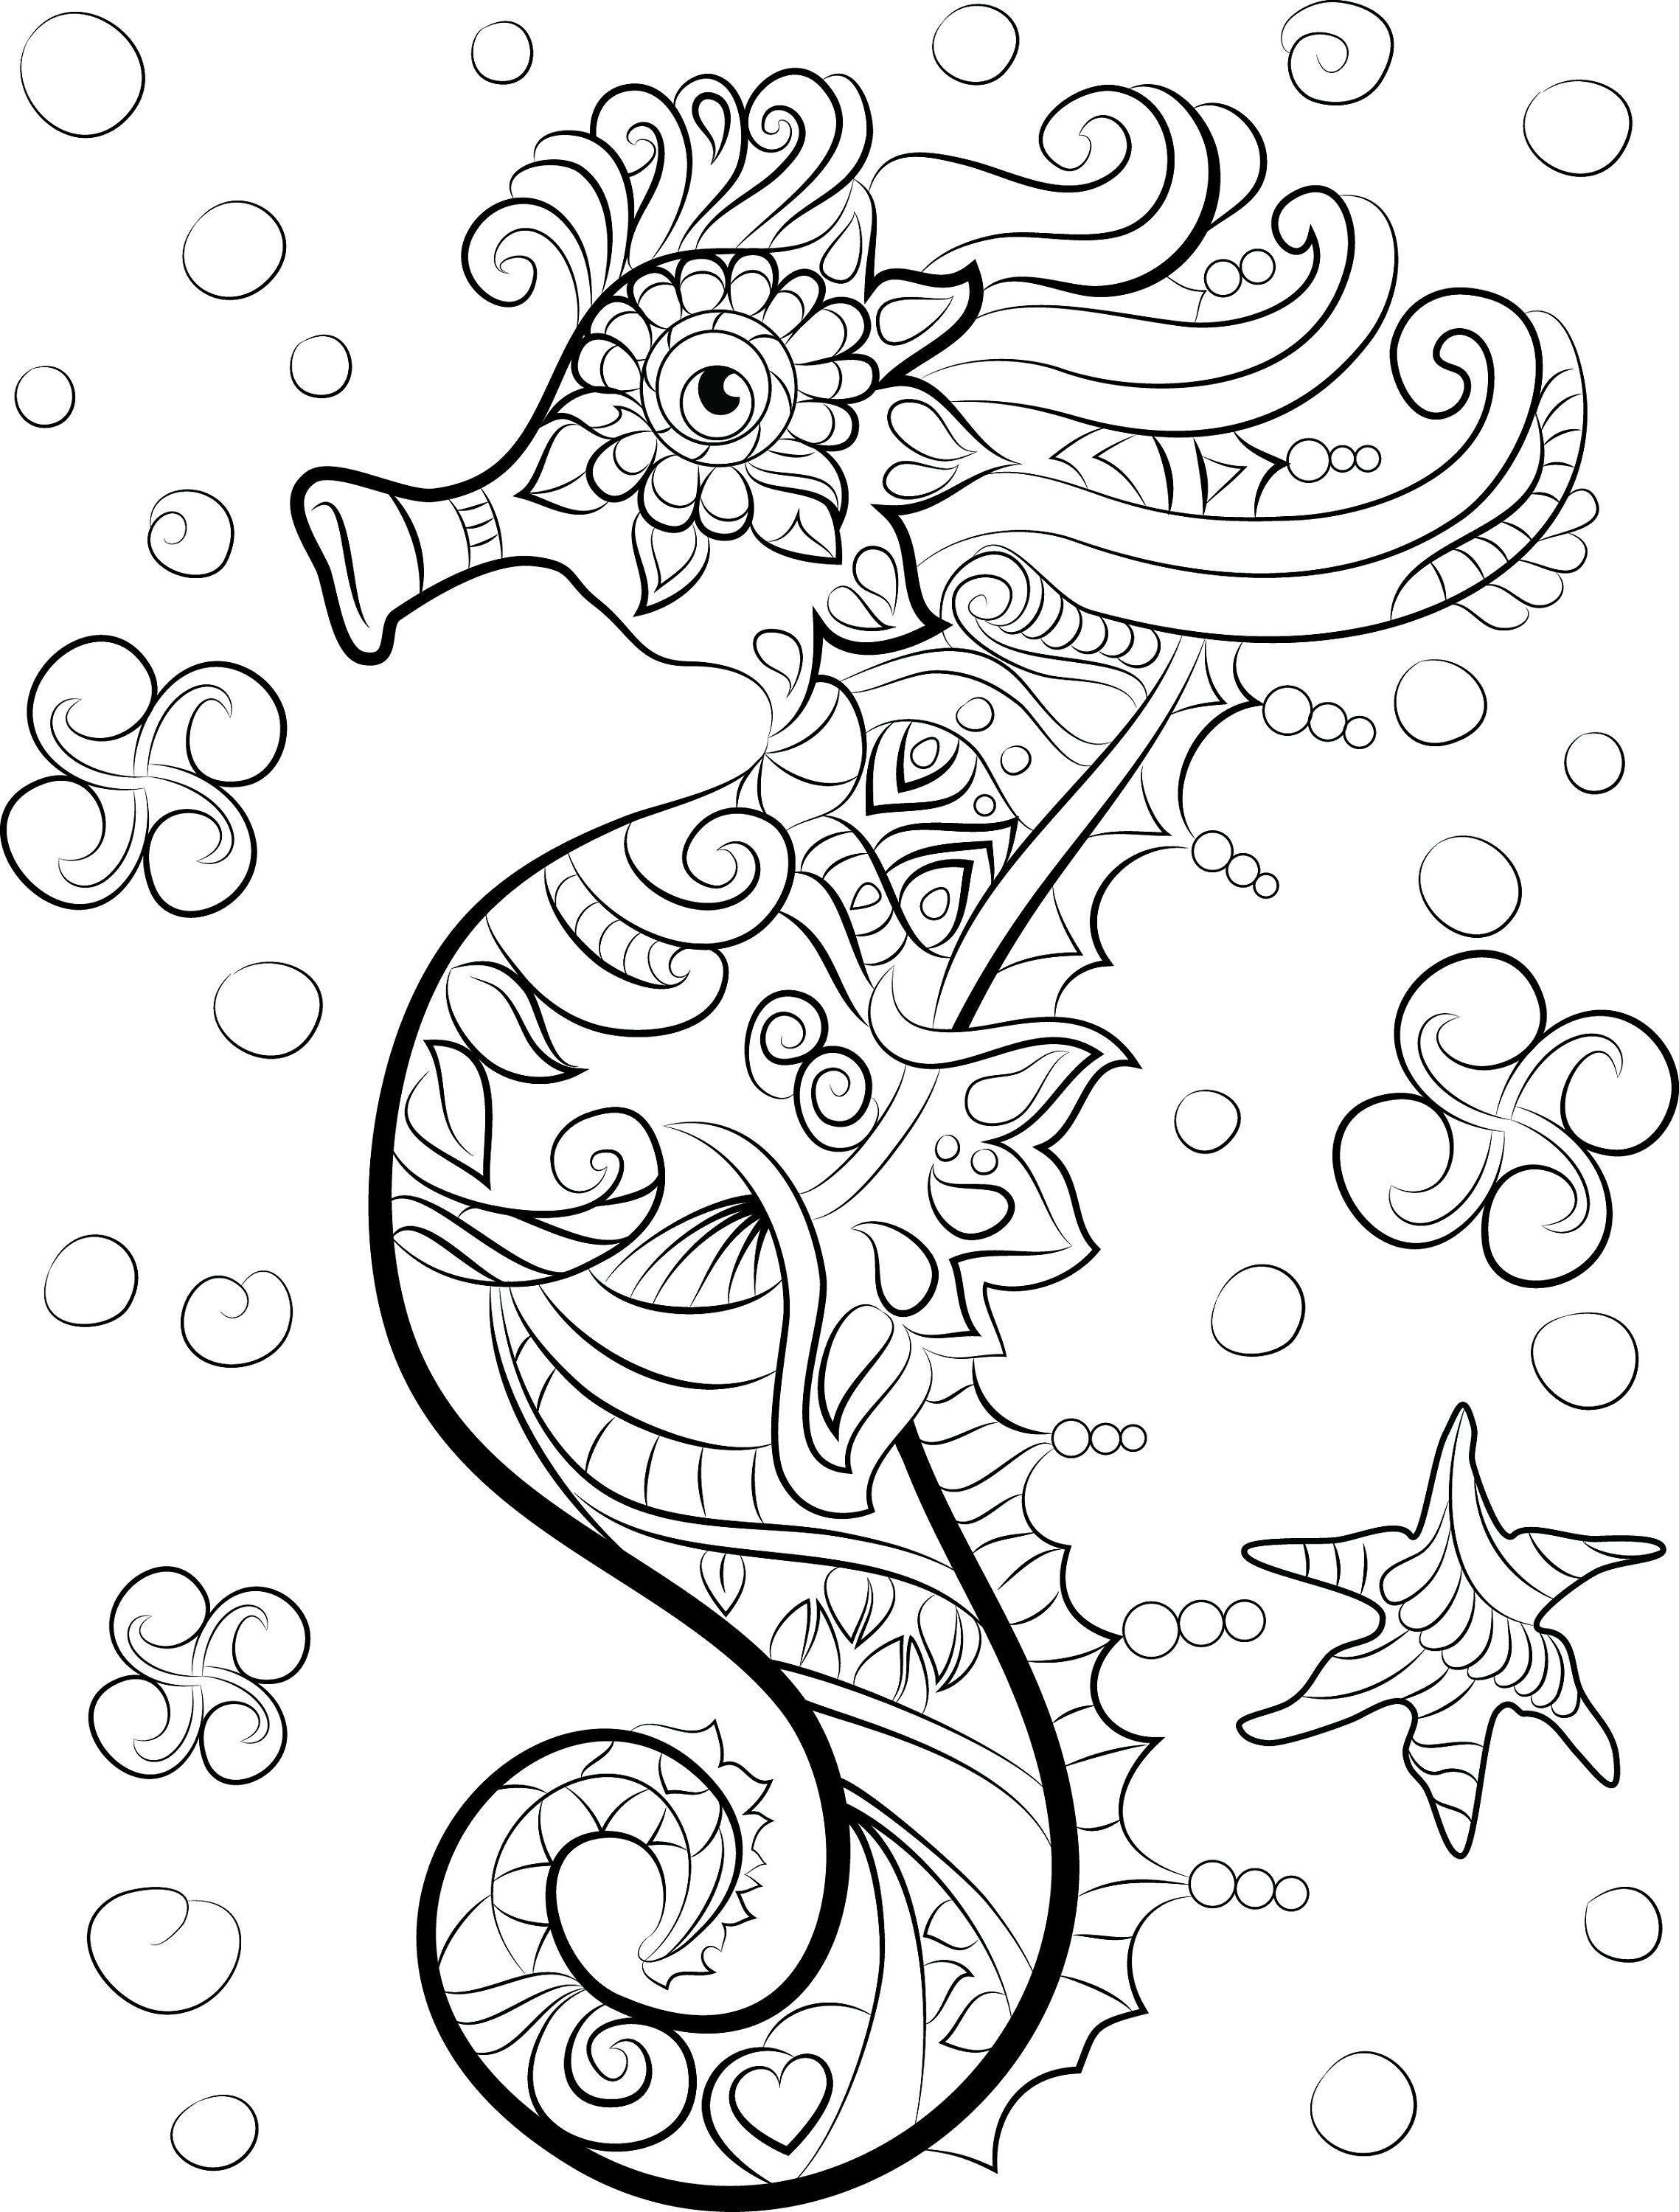 Awesome Coloring Page Under The Sea That You Must Know You Re In